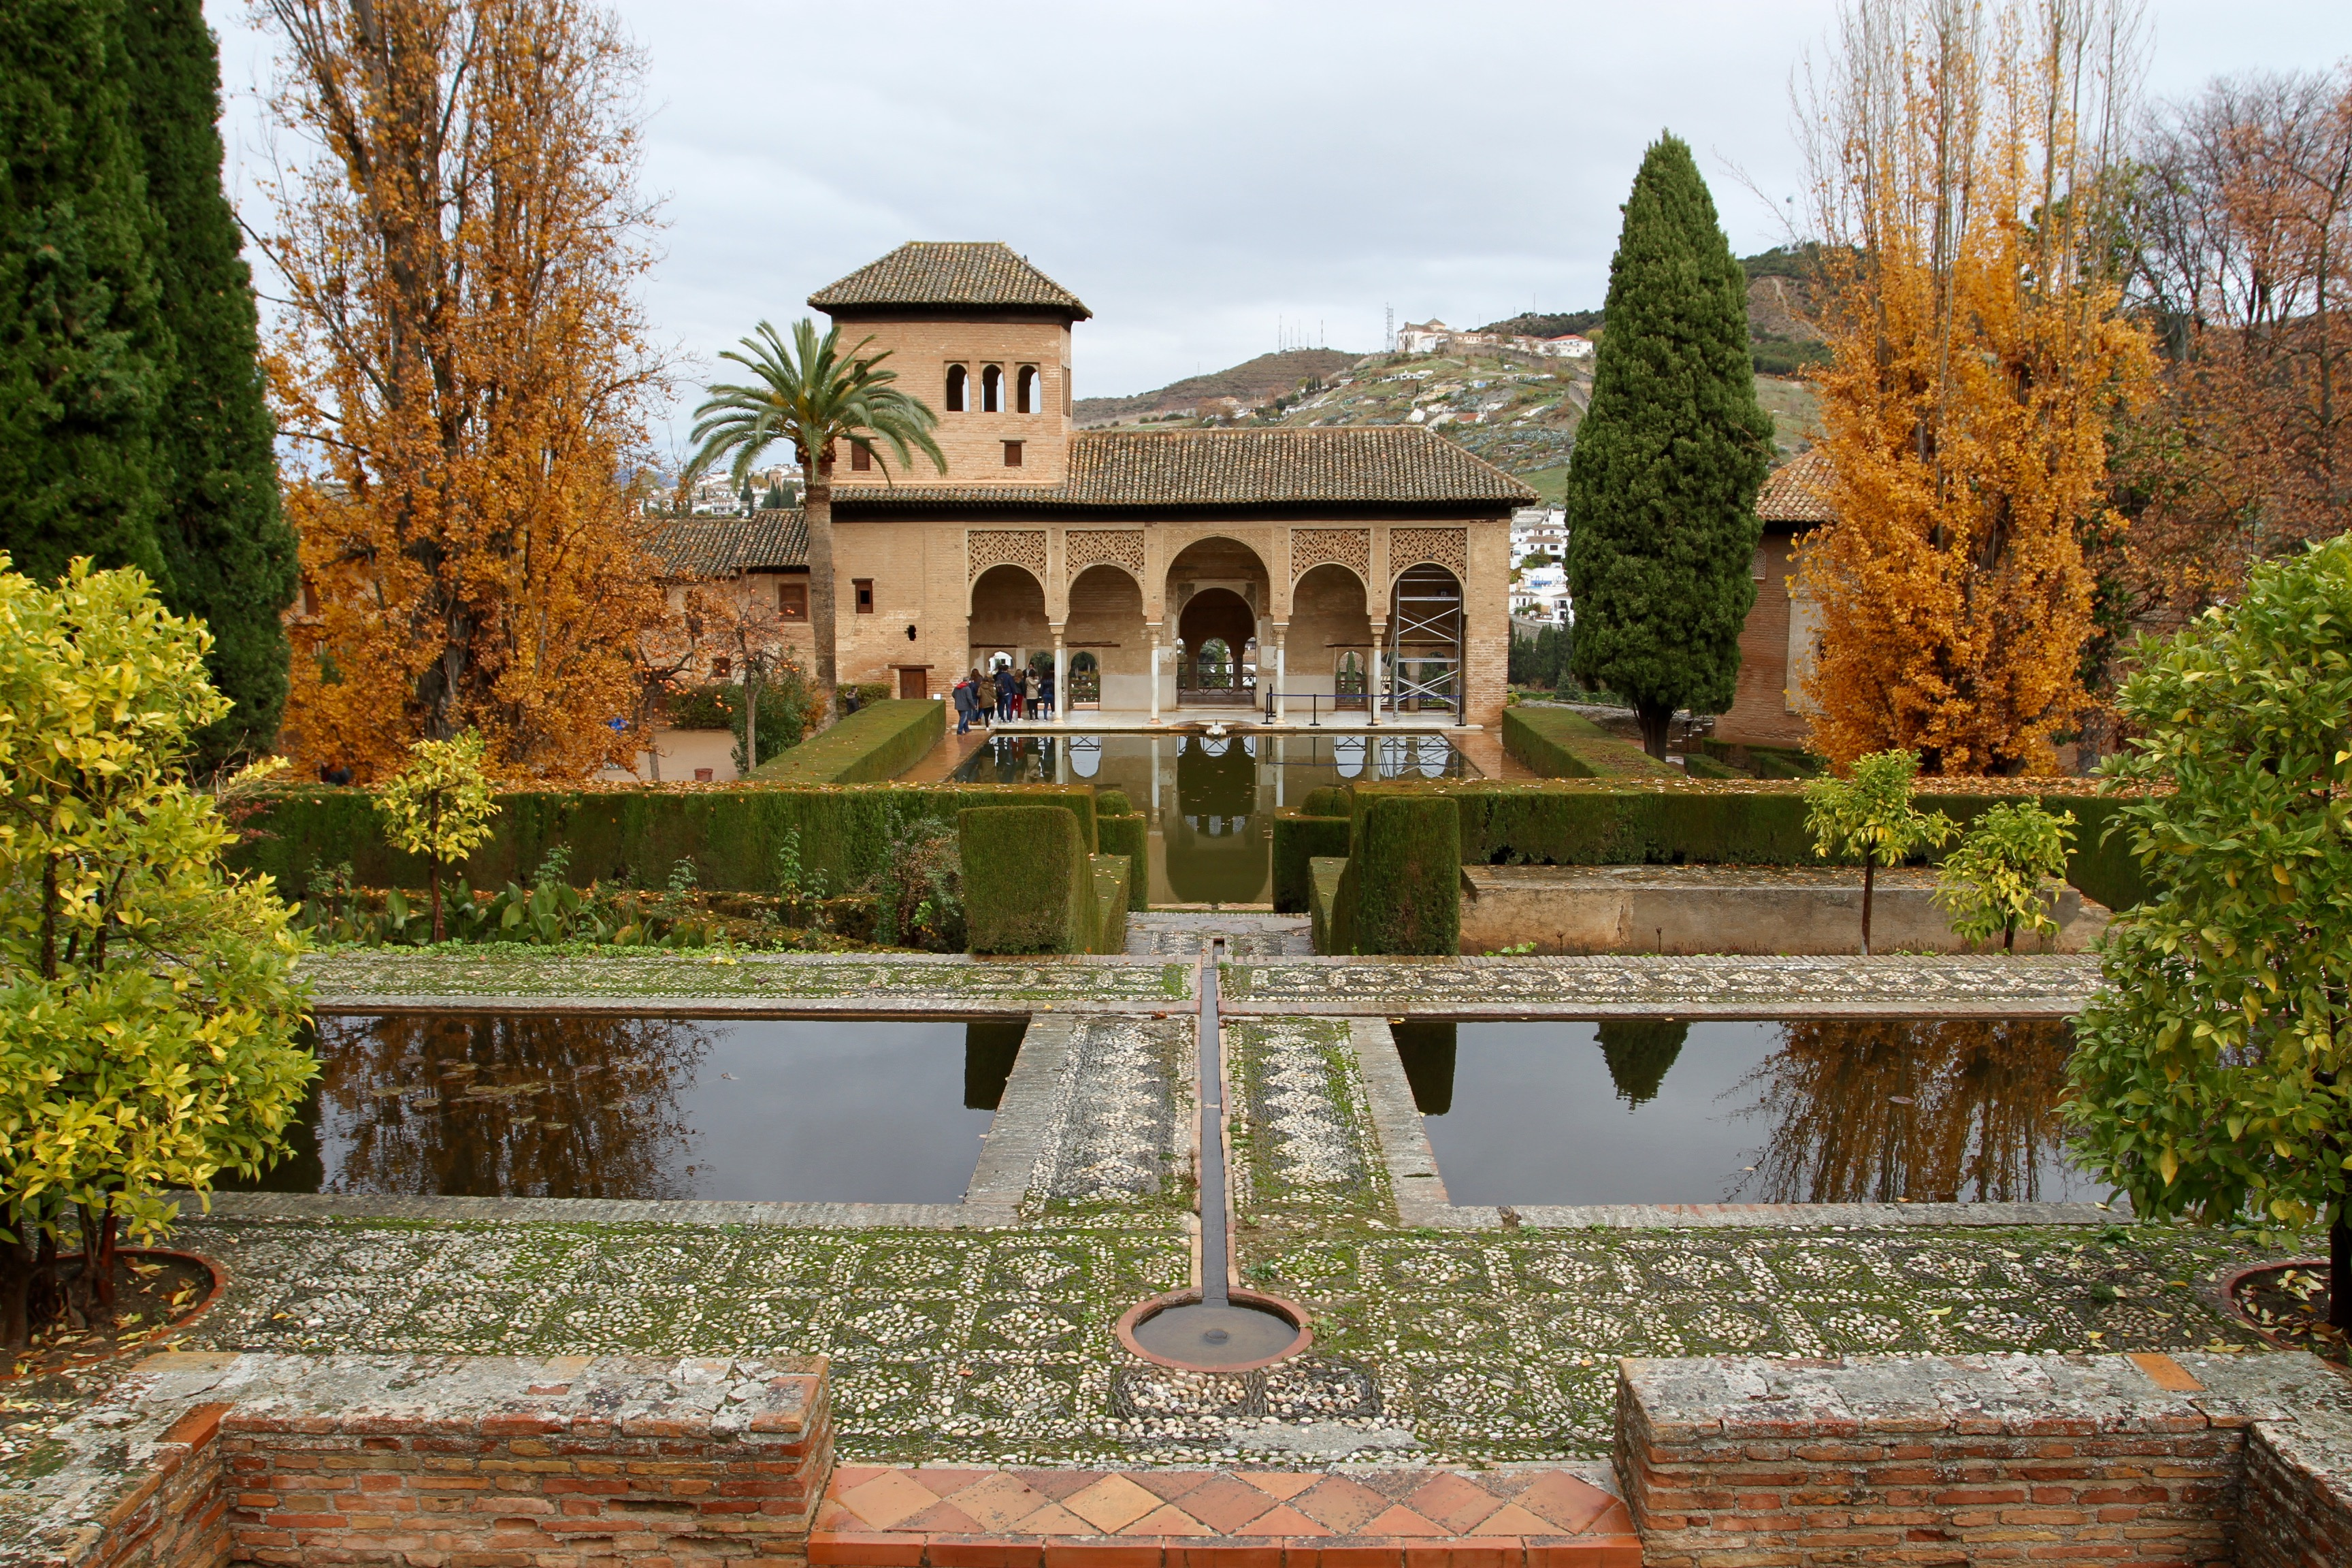 A rainy day at the Alhambra | notesfromcamelidcountry